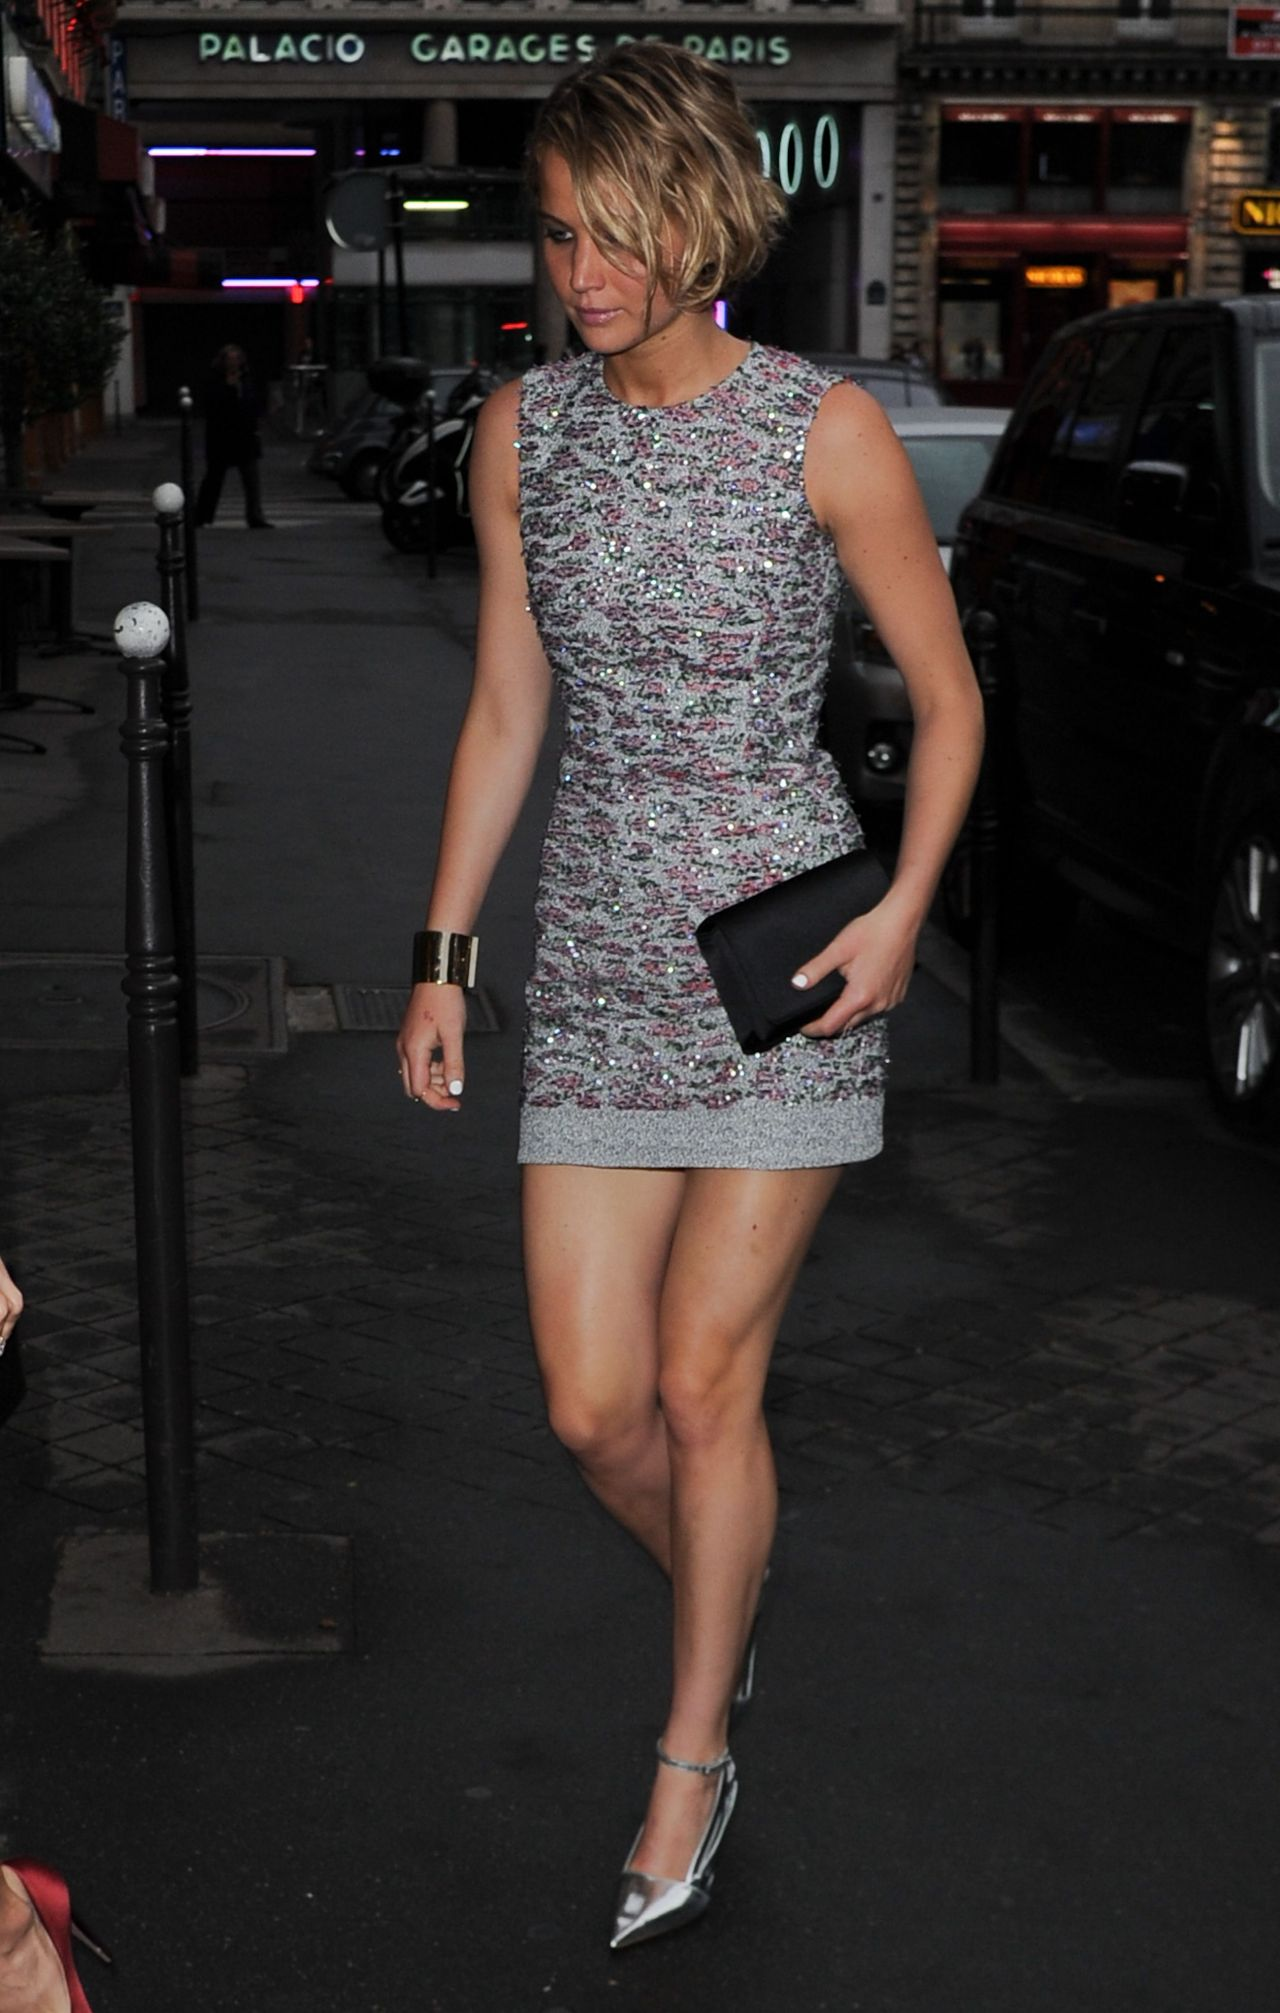 Lawrence Flaunts Legs in Mini Dress - Dior After Party Held At ...